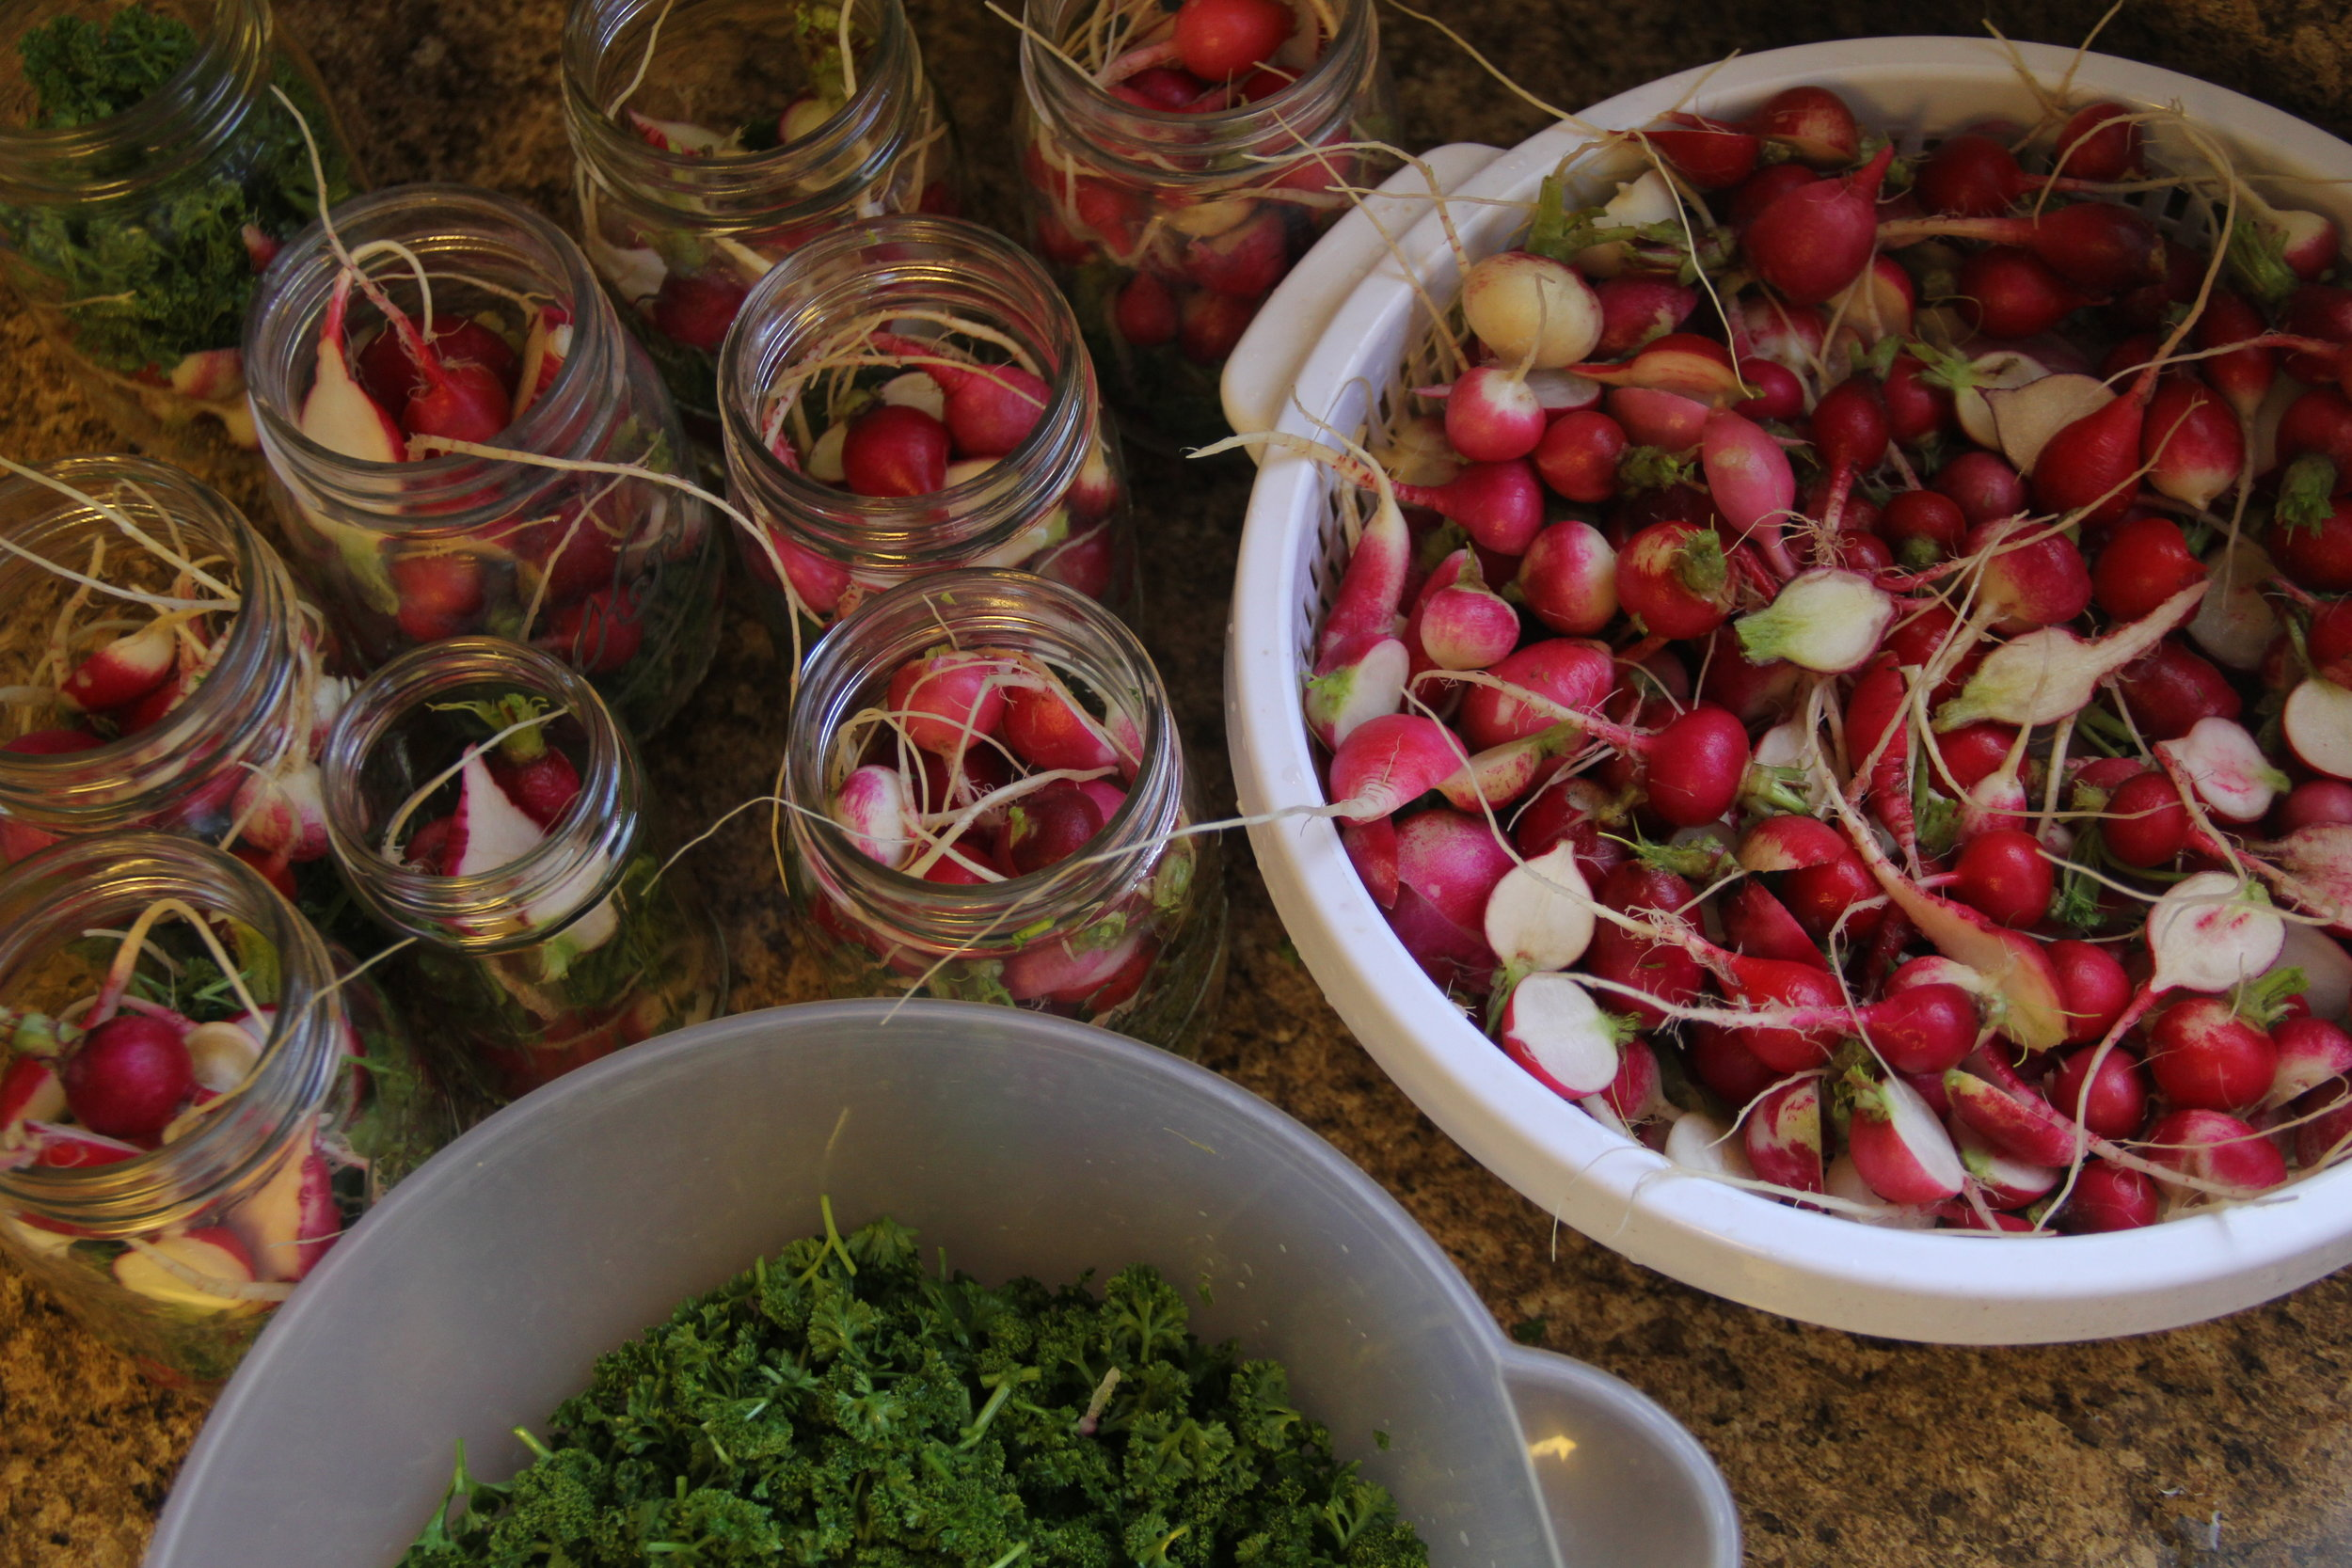 pickled radishes are a real hit with market customers